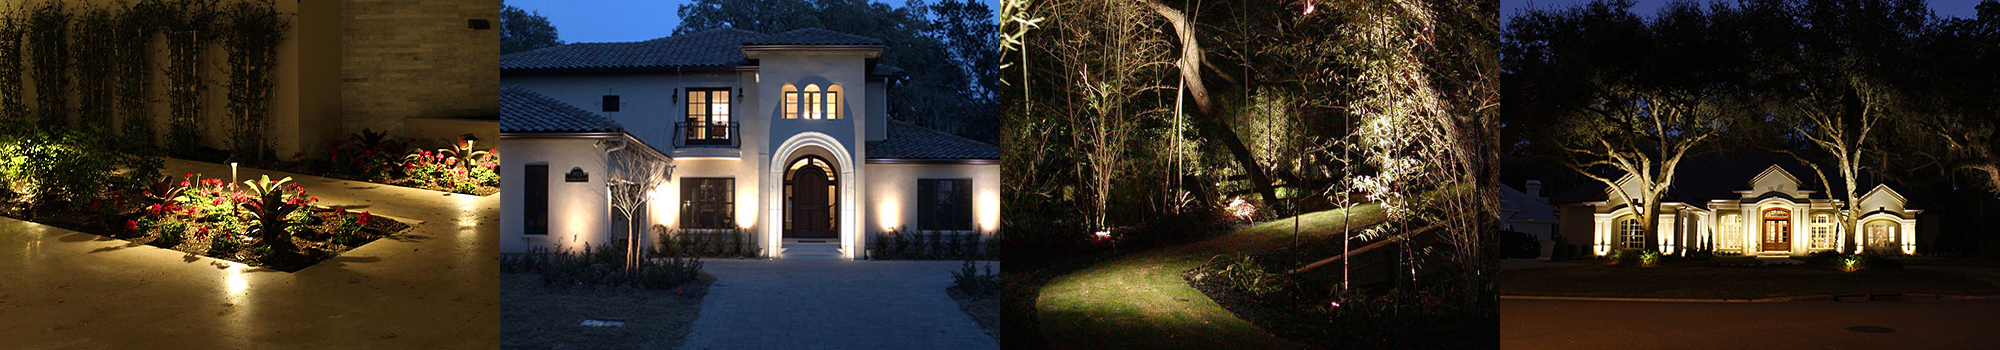 Outdoor lighting company jacksonville fl client focused outdoor lighting services aloadofball Gallery